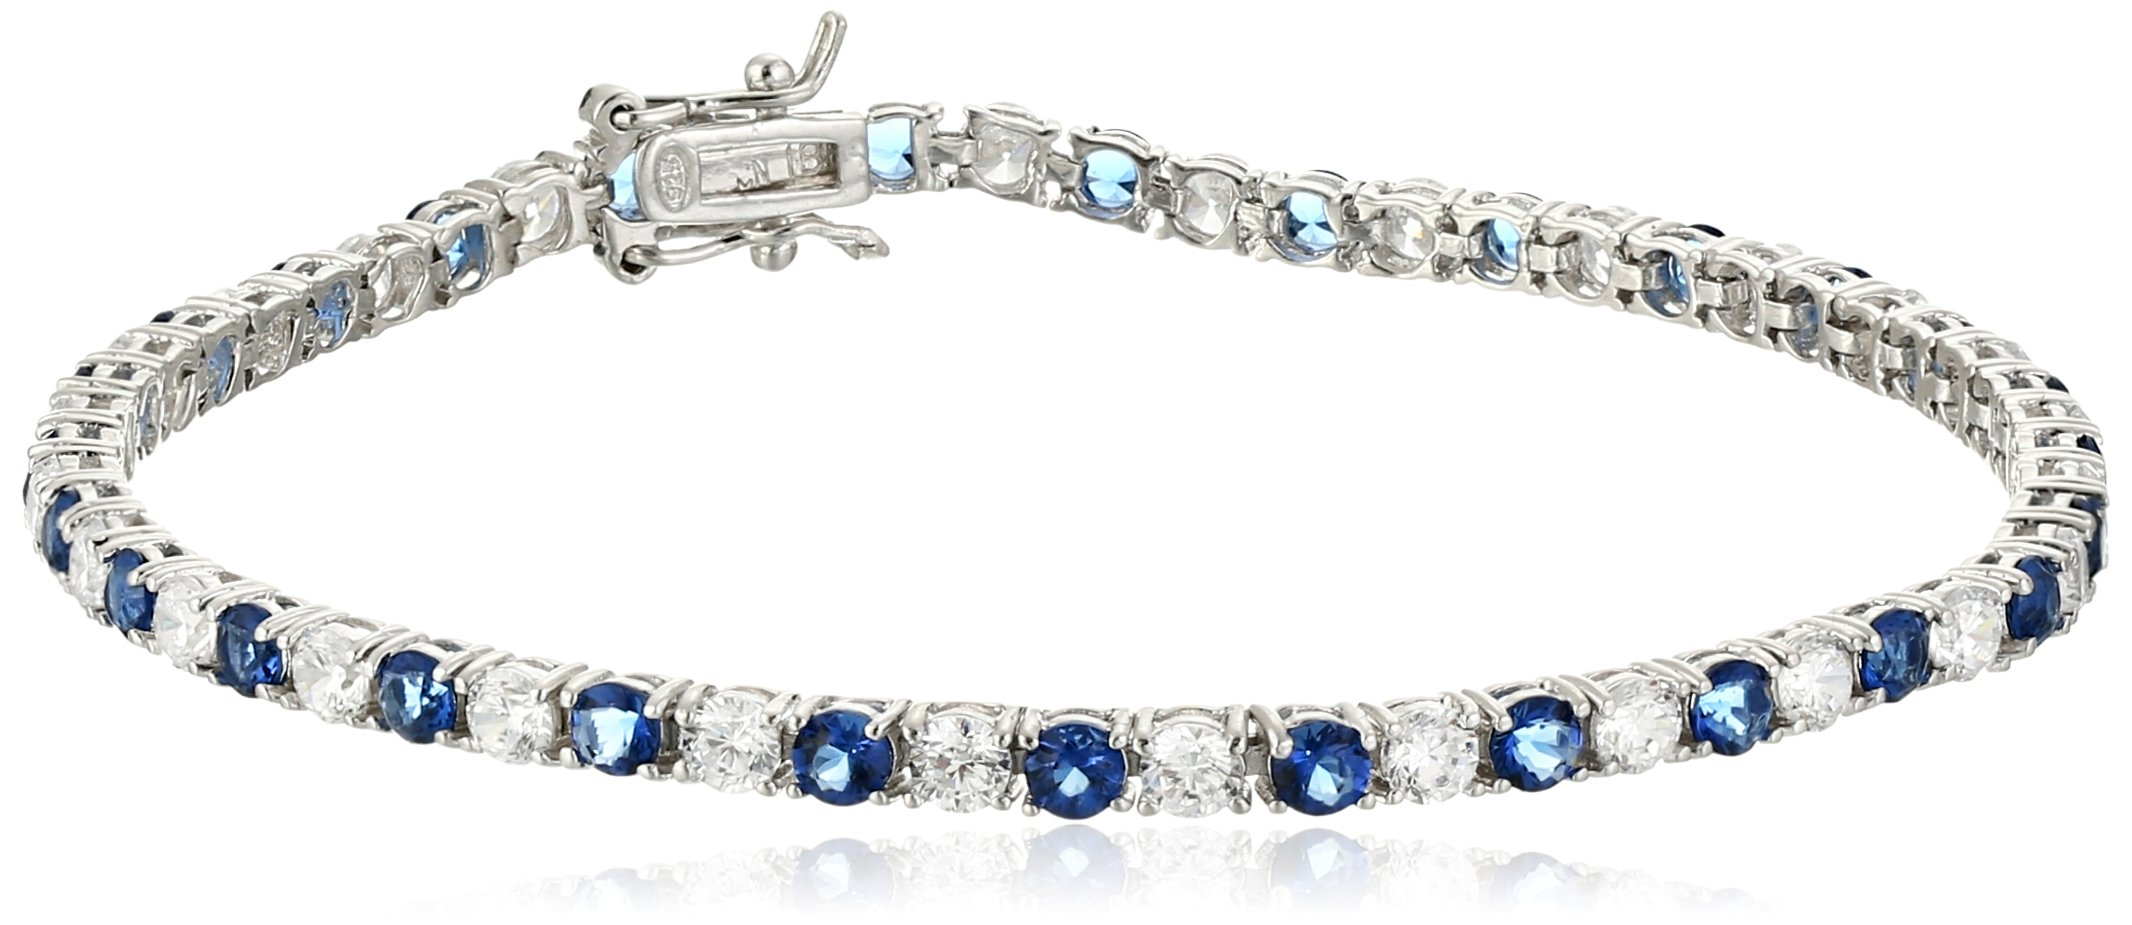 Sterling Silver Alternating Sapphire and White Prong Set AAA Cubic Zirconia Tennis Bracelet, 7.5'' (5.9 cttw)